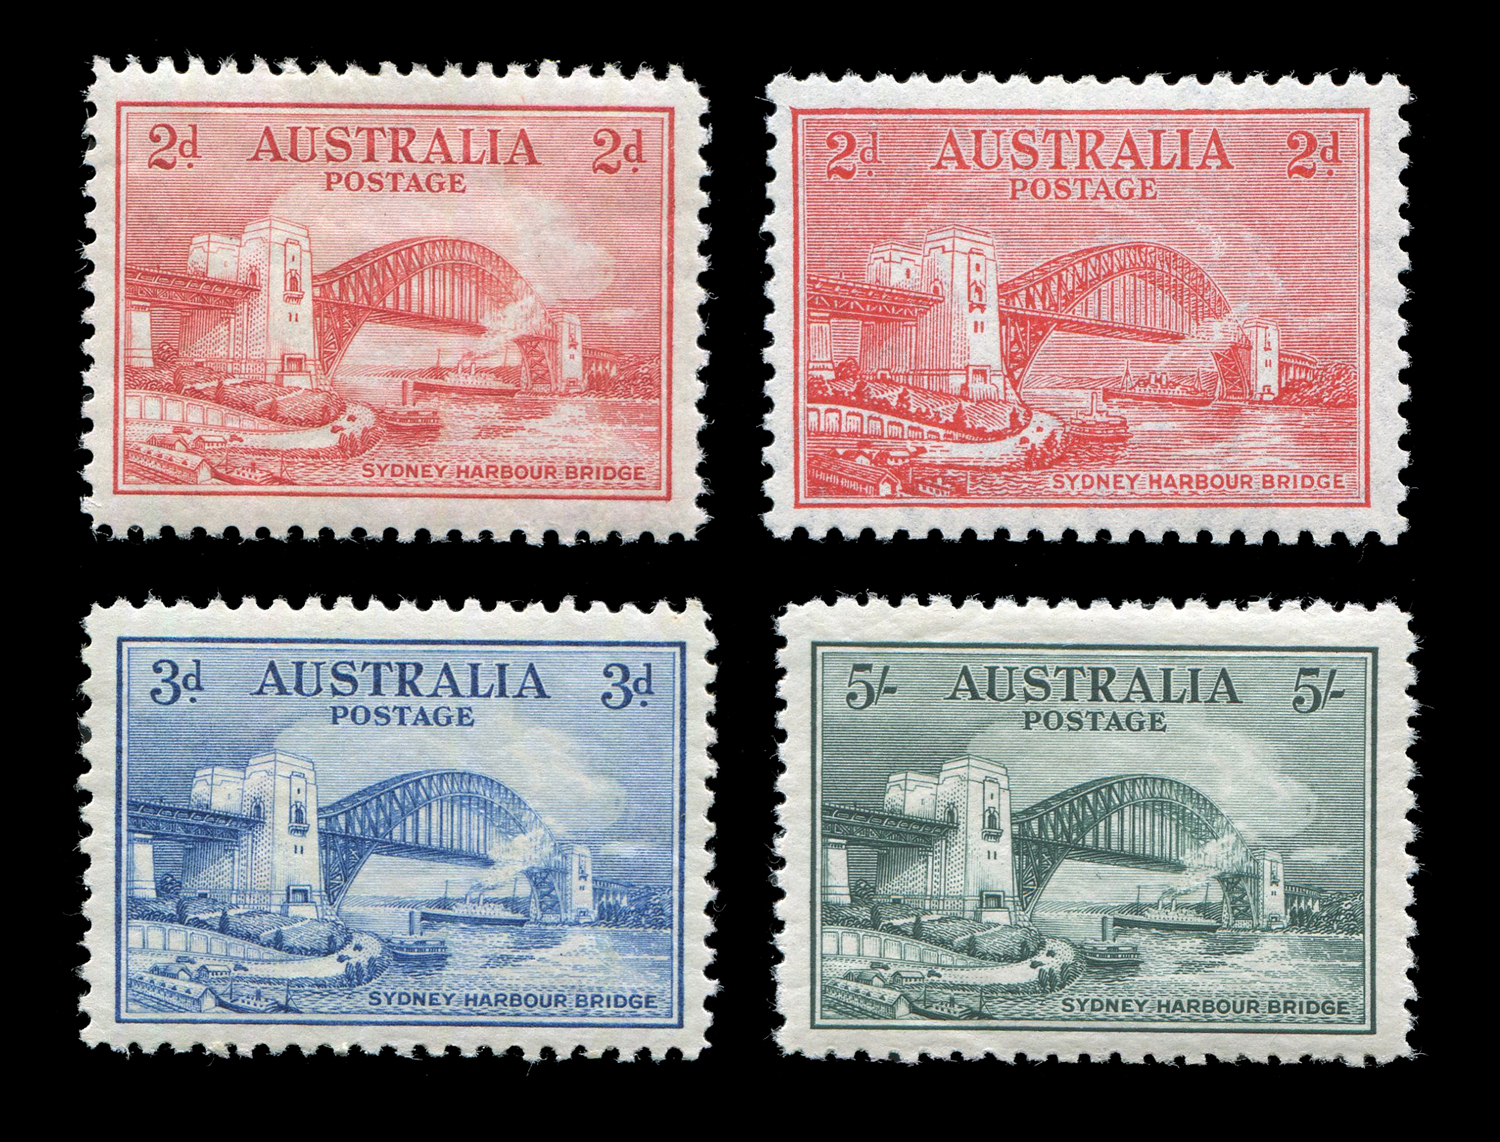 Lot 3013 - An Australia 1932 Sydney bridge set of 4 mint stamps.Buyer's Premium 29.4% (including VAT @ 20%)